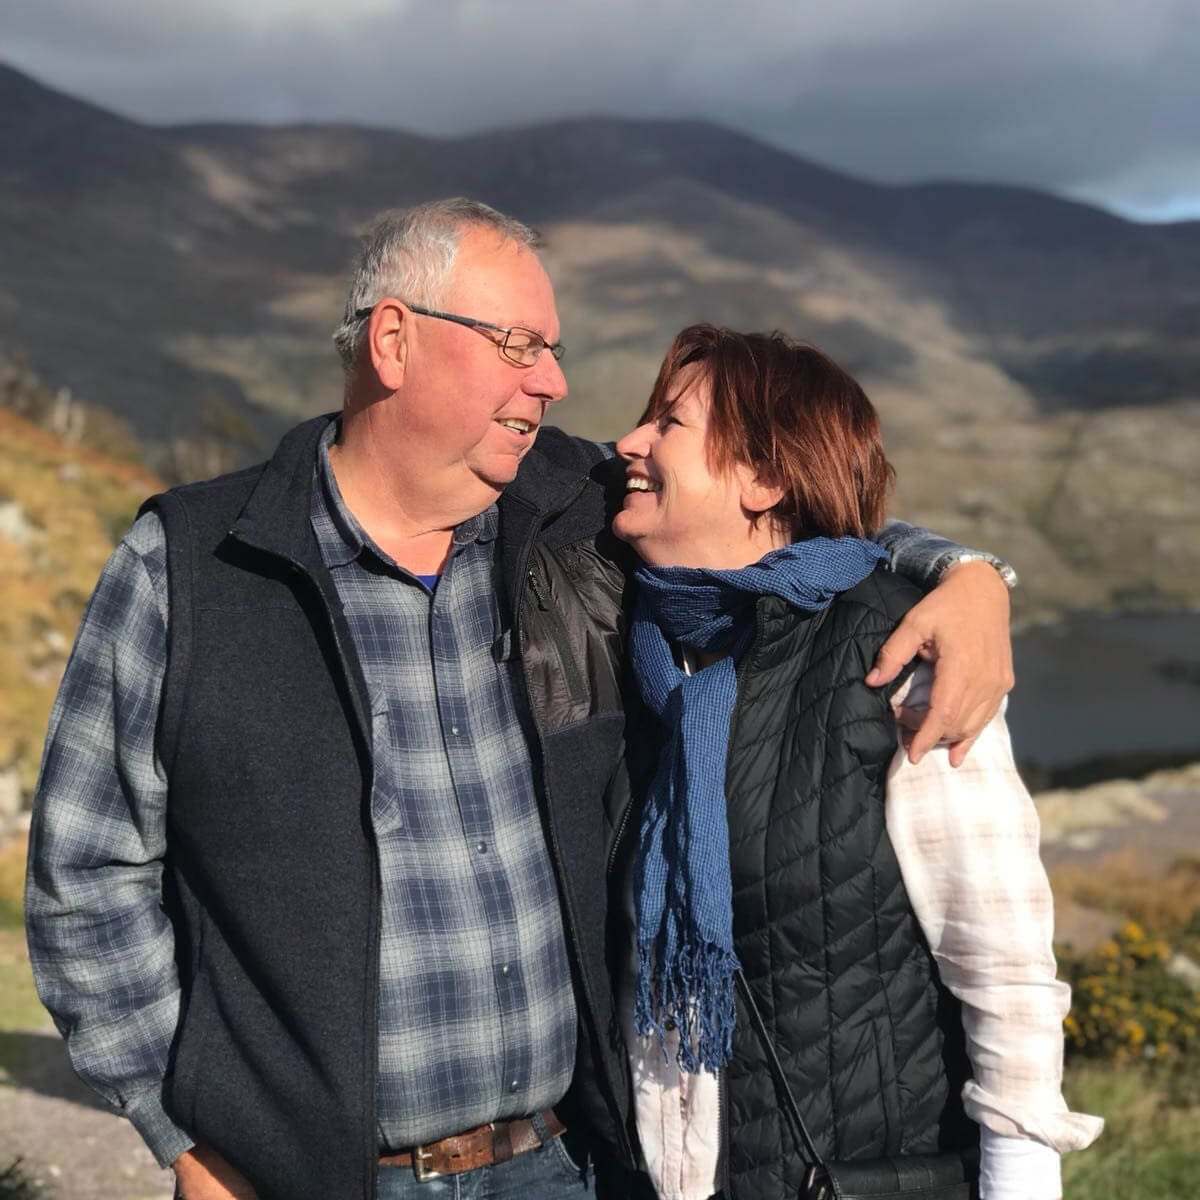 Middle aged couple look into each other's eyes in a scenic location in Ireland